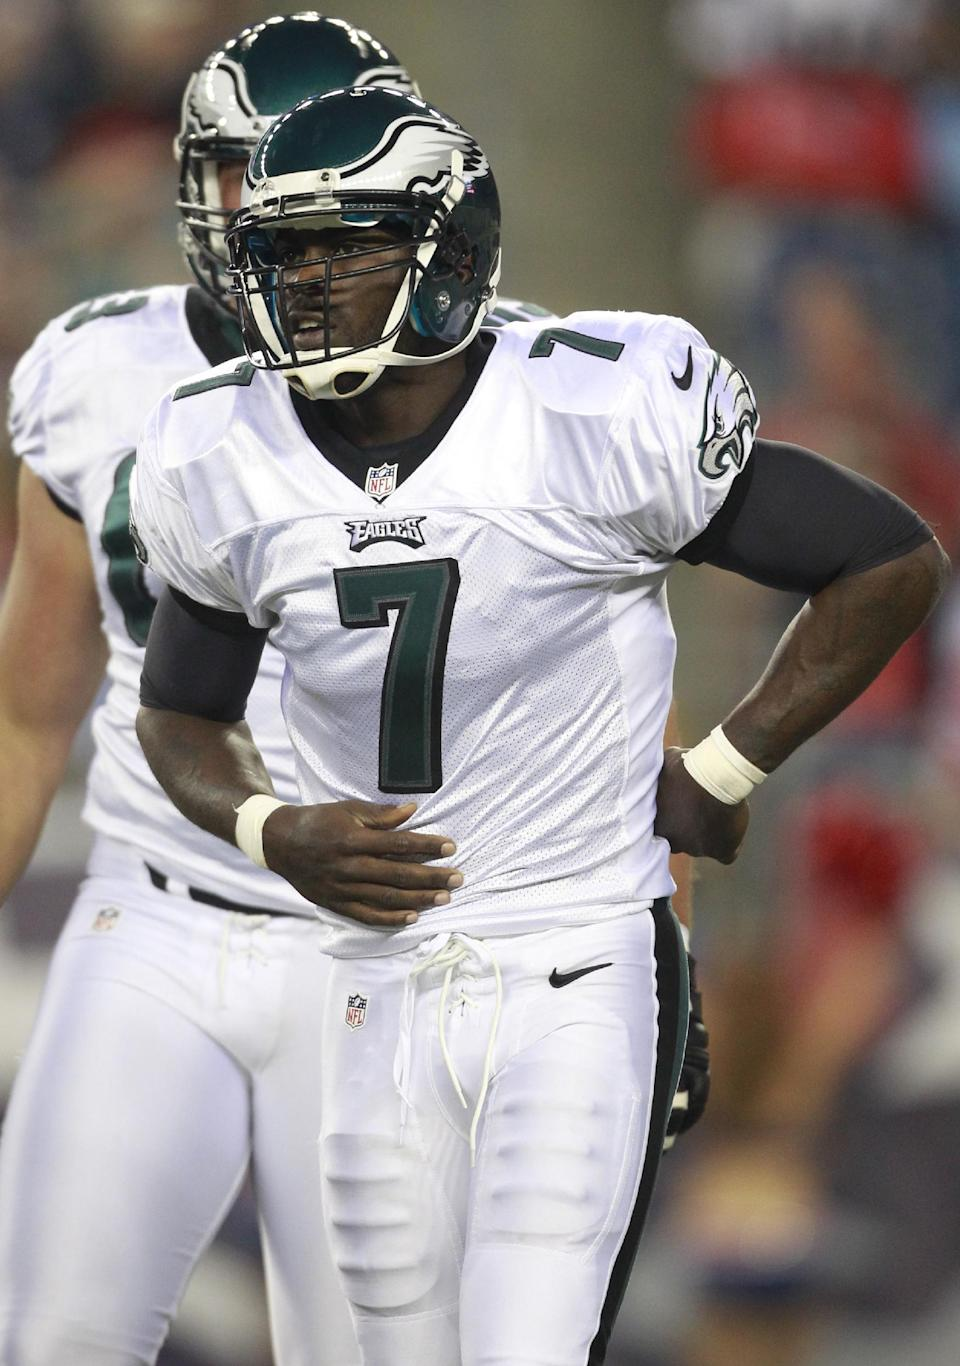 Philadelphia Eagles quarterback Michael Vick (7) holds his mid-section after getting hit hard by New England Patriots linebacker Jermaine Cunningham (96) during the first quarter of an NFL preseason football game in Foxborough, Mass., Monday, Aug. 20, 2012.  Vick left the game after the play. (AP Photo/Steven Senne)